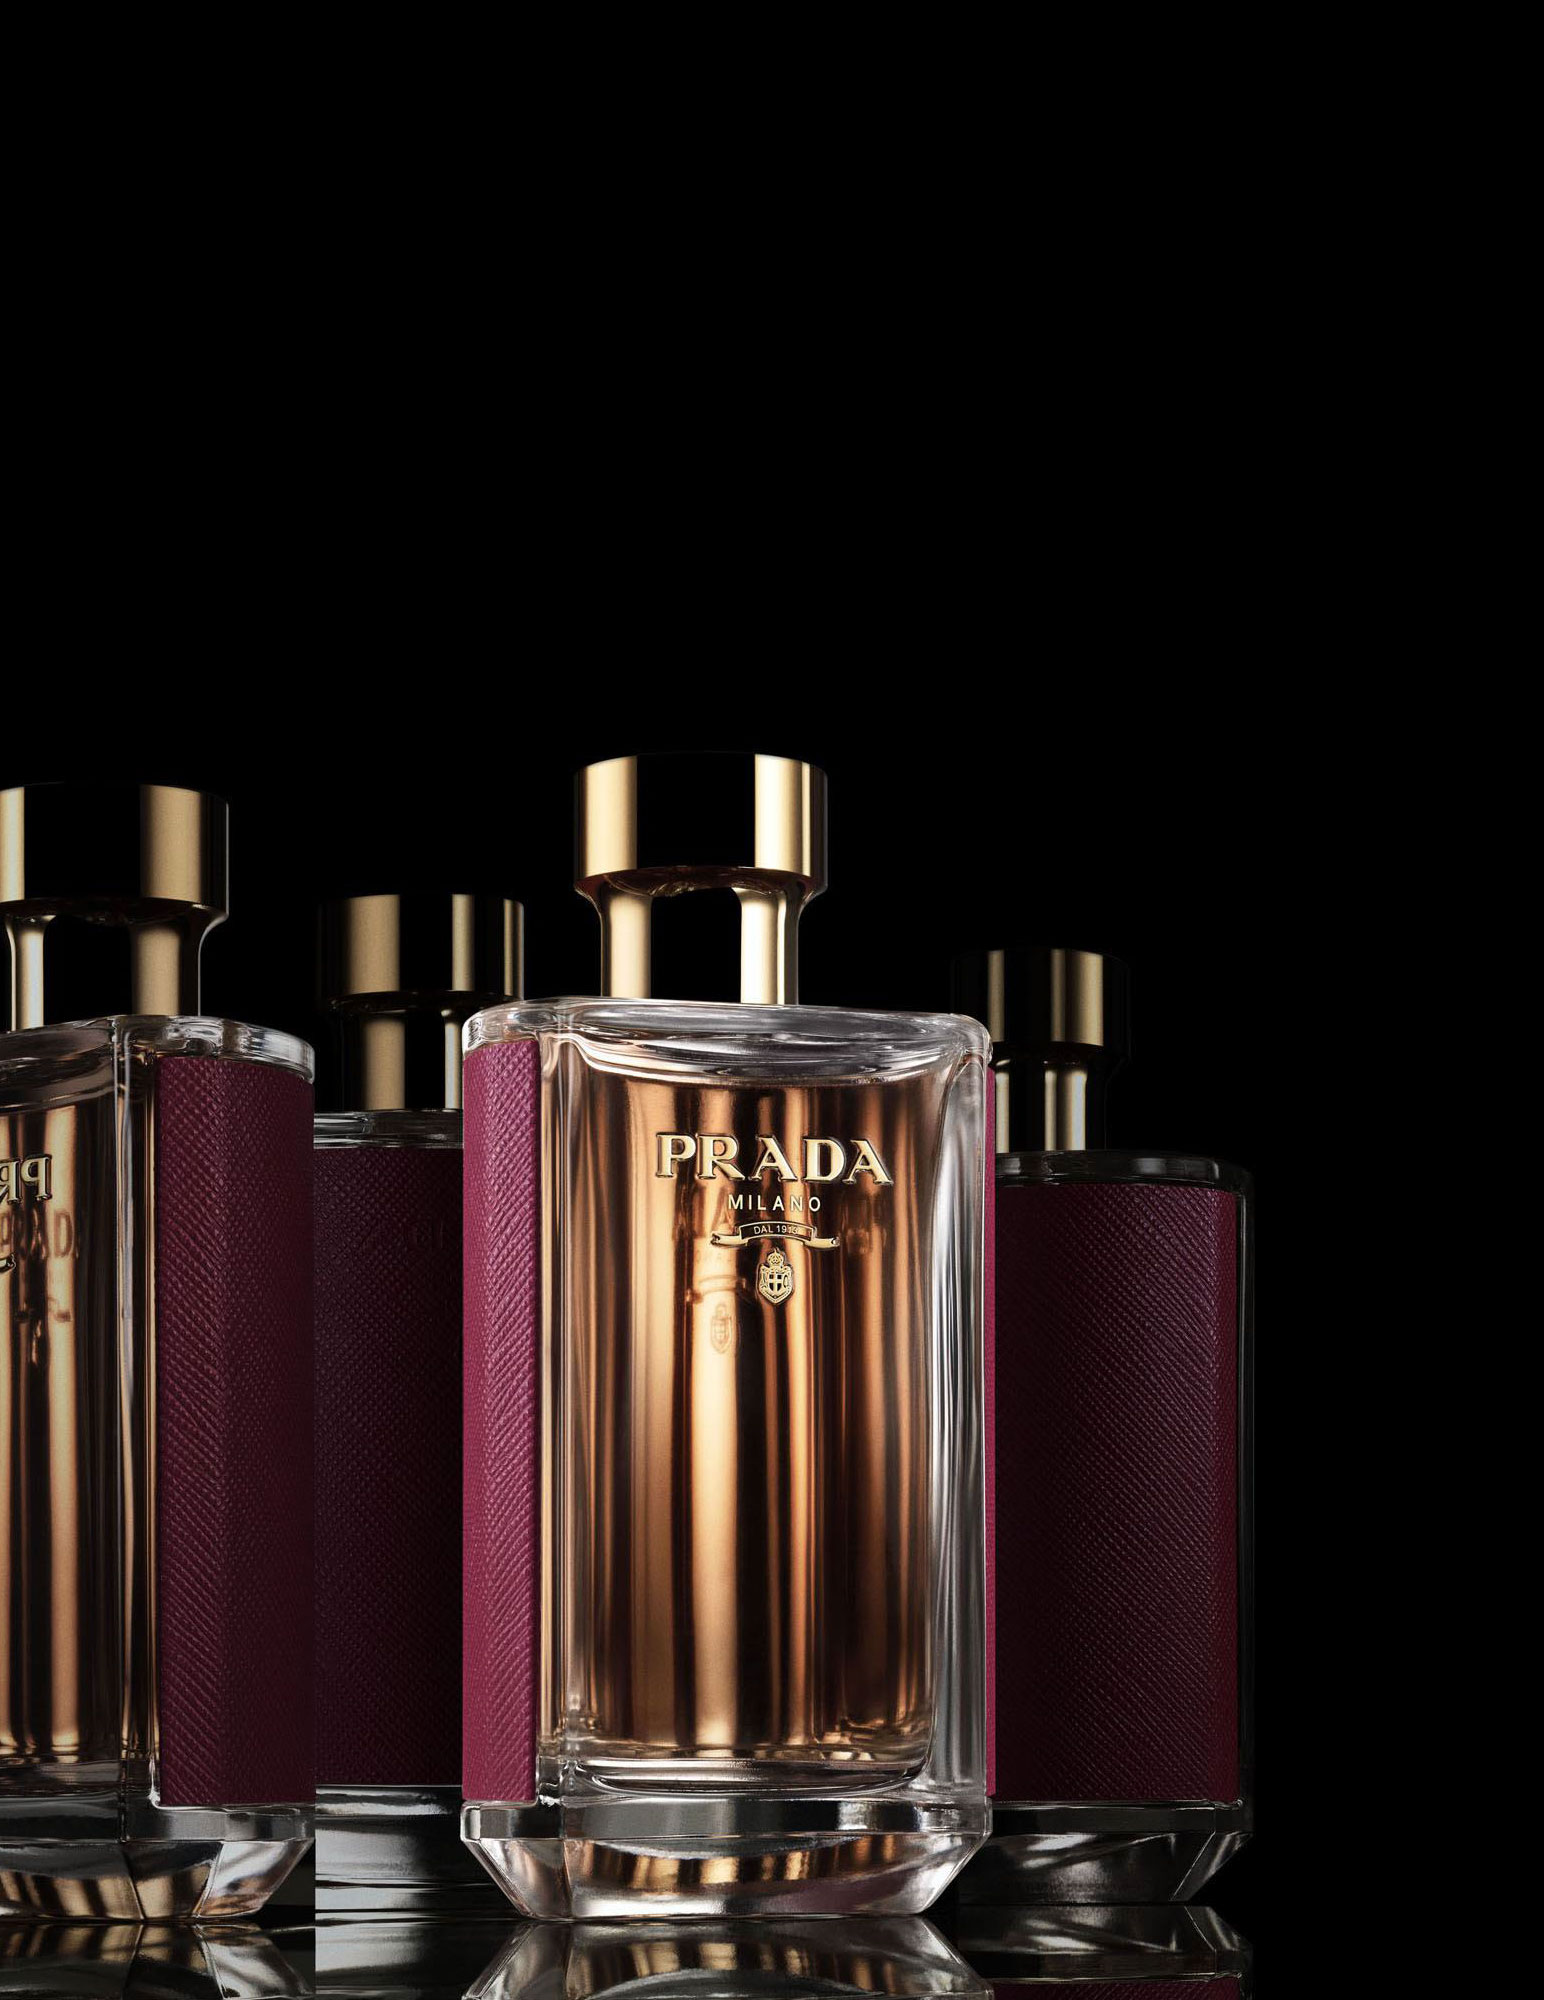 prada la femme intense prada parfum un nouveau parfum pour femme 2017. Black Bedroom Furniture Sets. Home Design Ideas